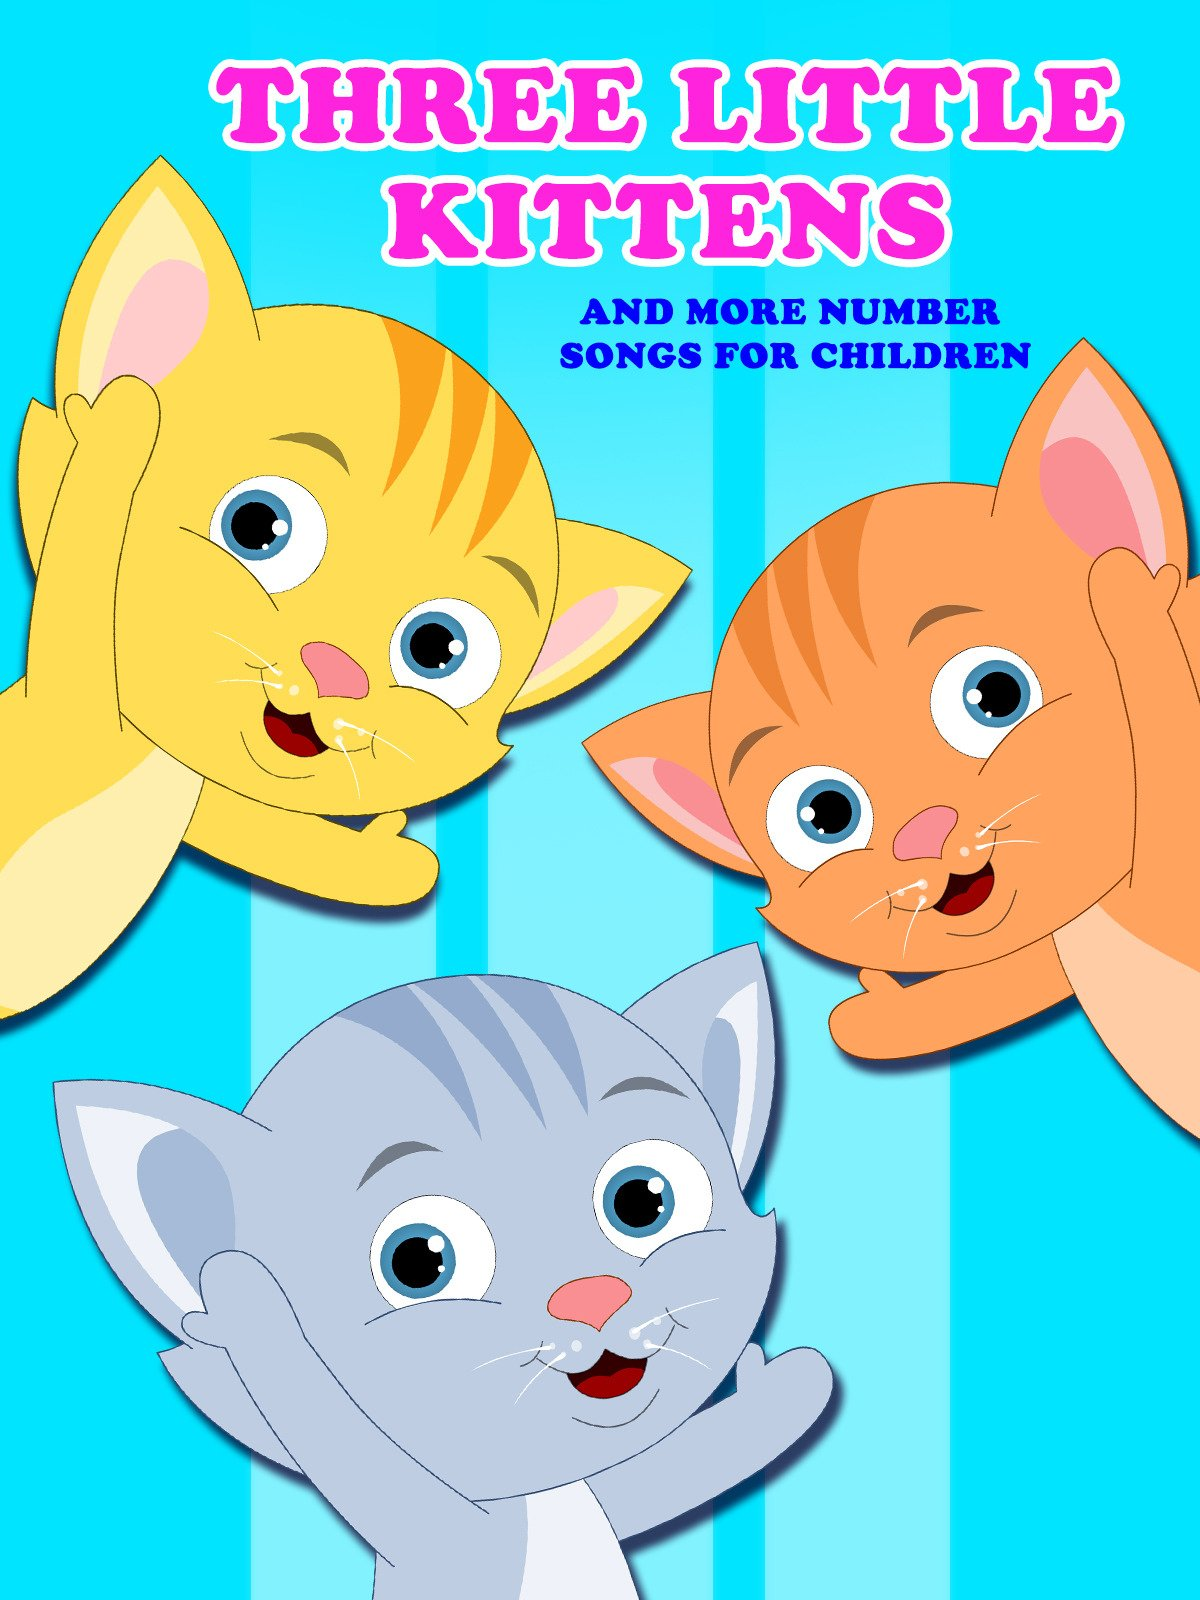 Three Little Kittens And More Number Songs For Children